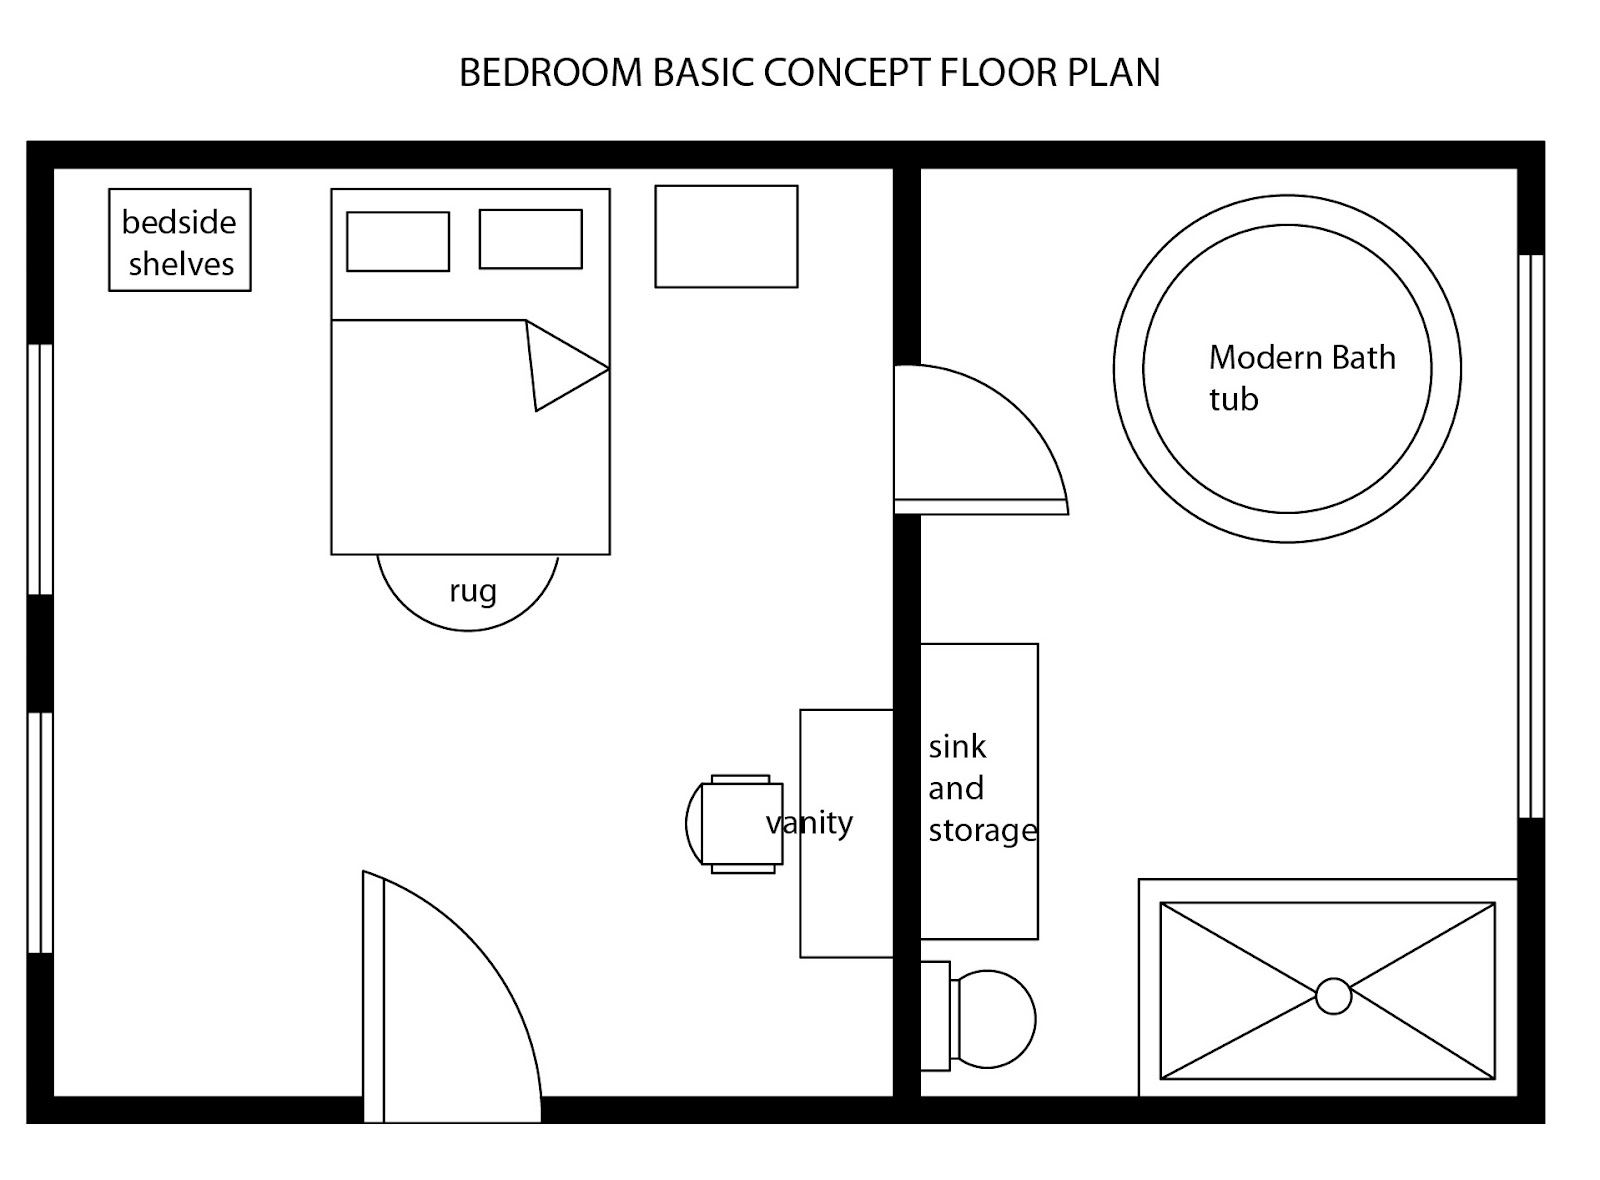 Modern master bedroom floor plans - Interior Design Amp Decor Modern Bedroom Basic Floor Plan